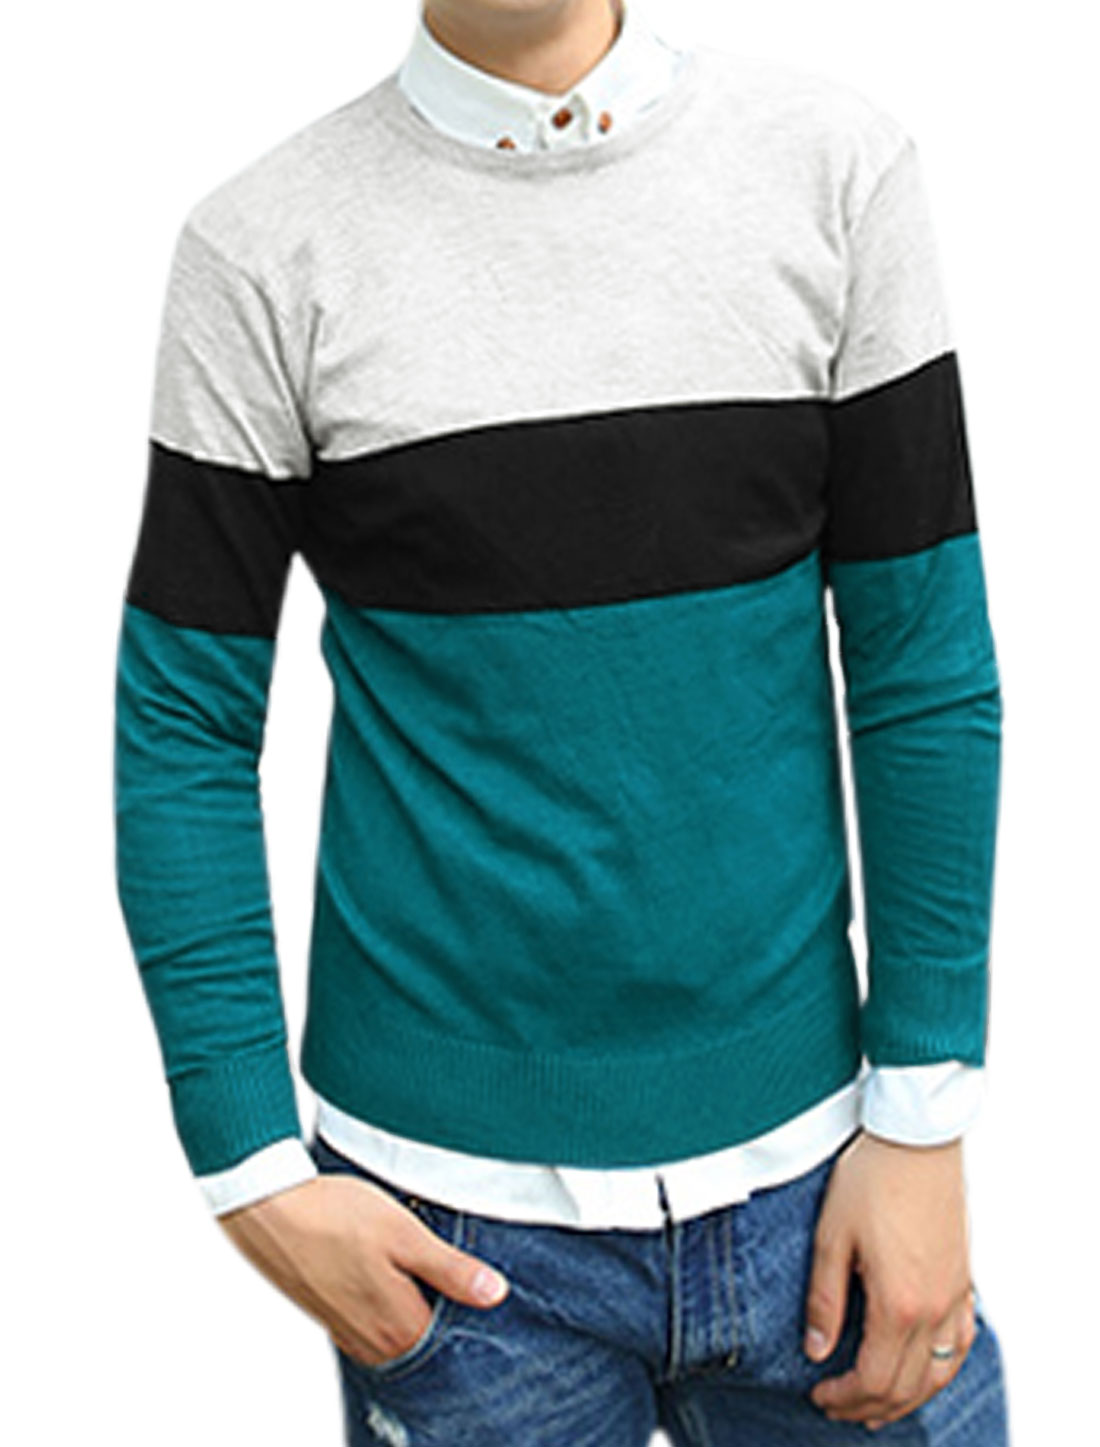 Men Contrast Color Crew Neck Long Sleeves Knit Shirt Turquoise Gray M